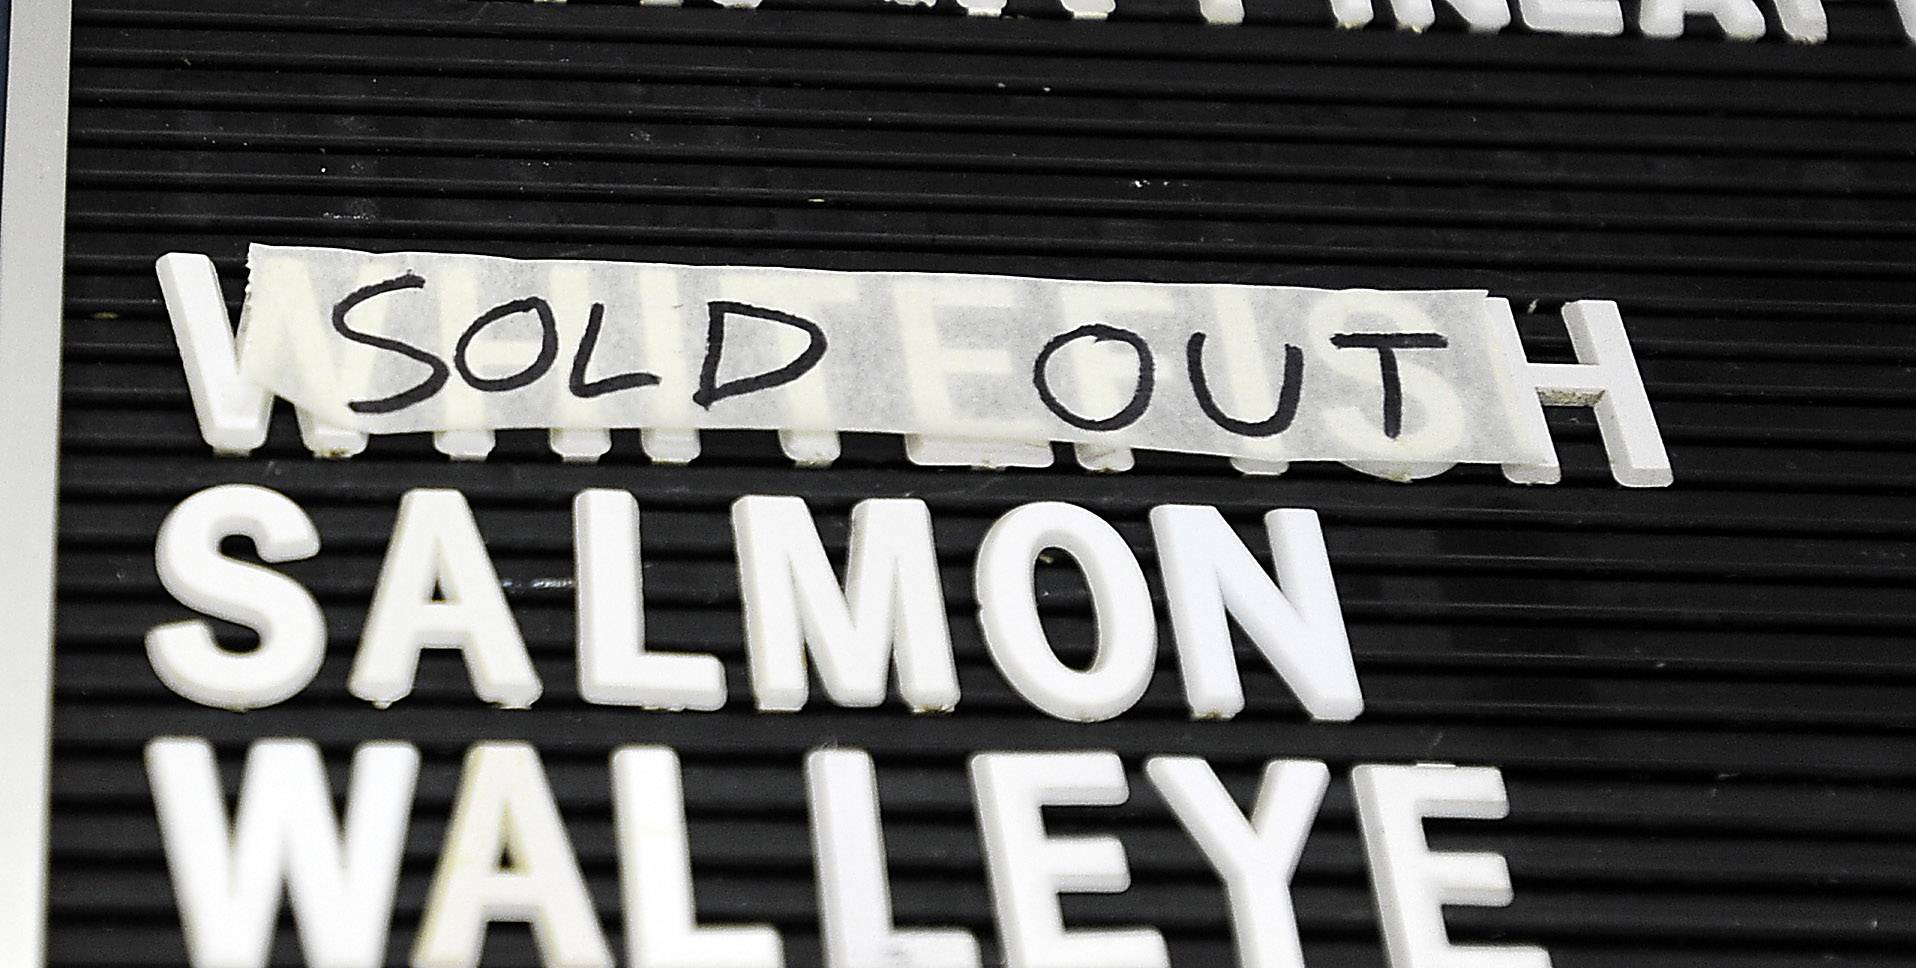 Andy Johnson has taped over his whitefish menu sign selection showing that Lake Superior whitefish is sold out.